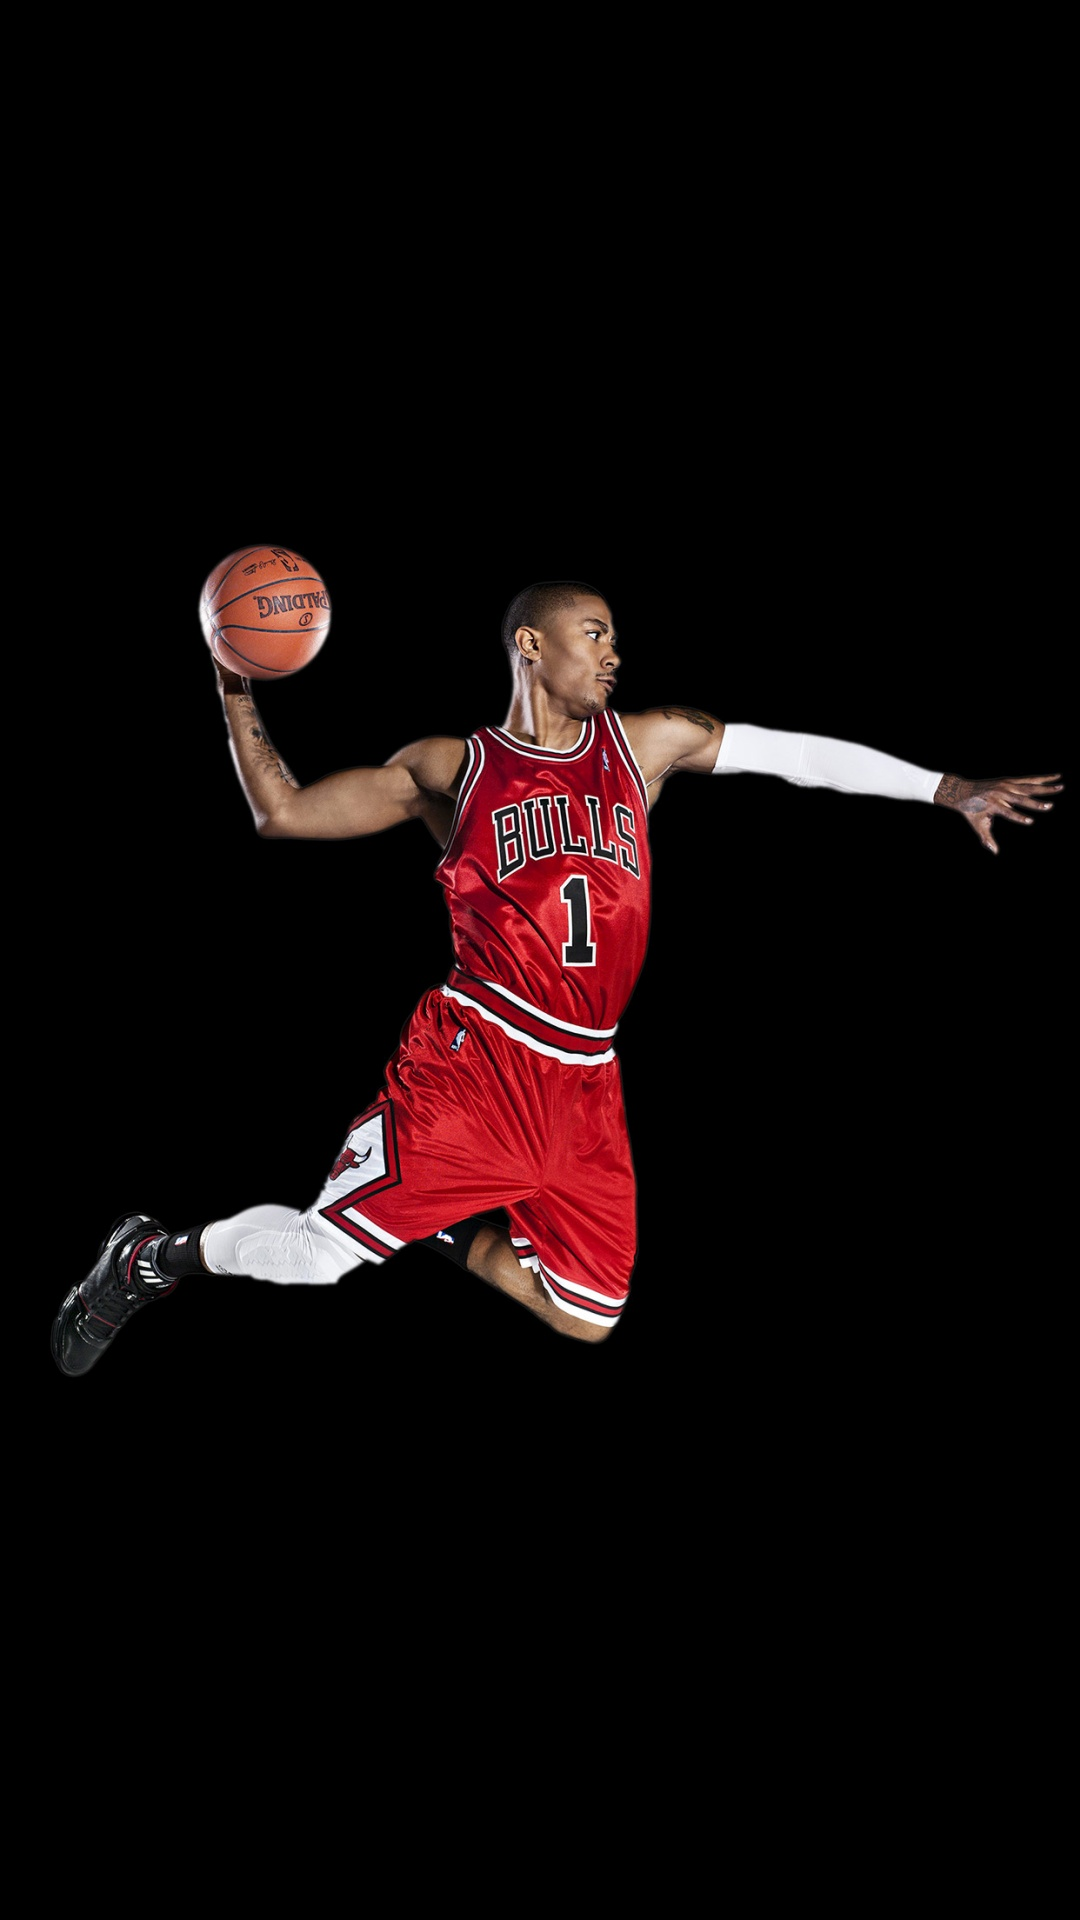 derrick rose wallpaper iphone - photo #36